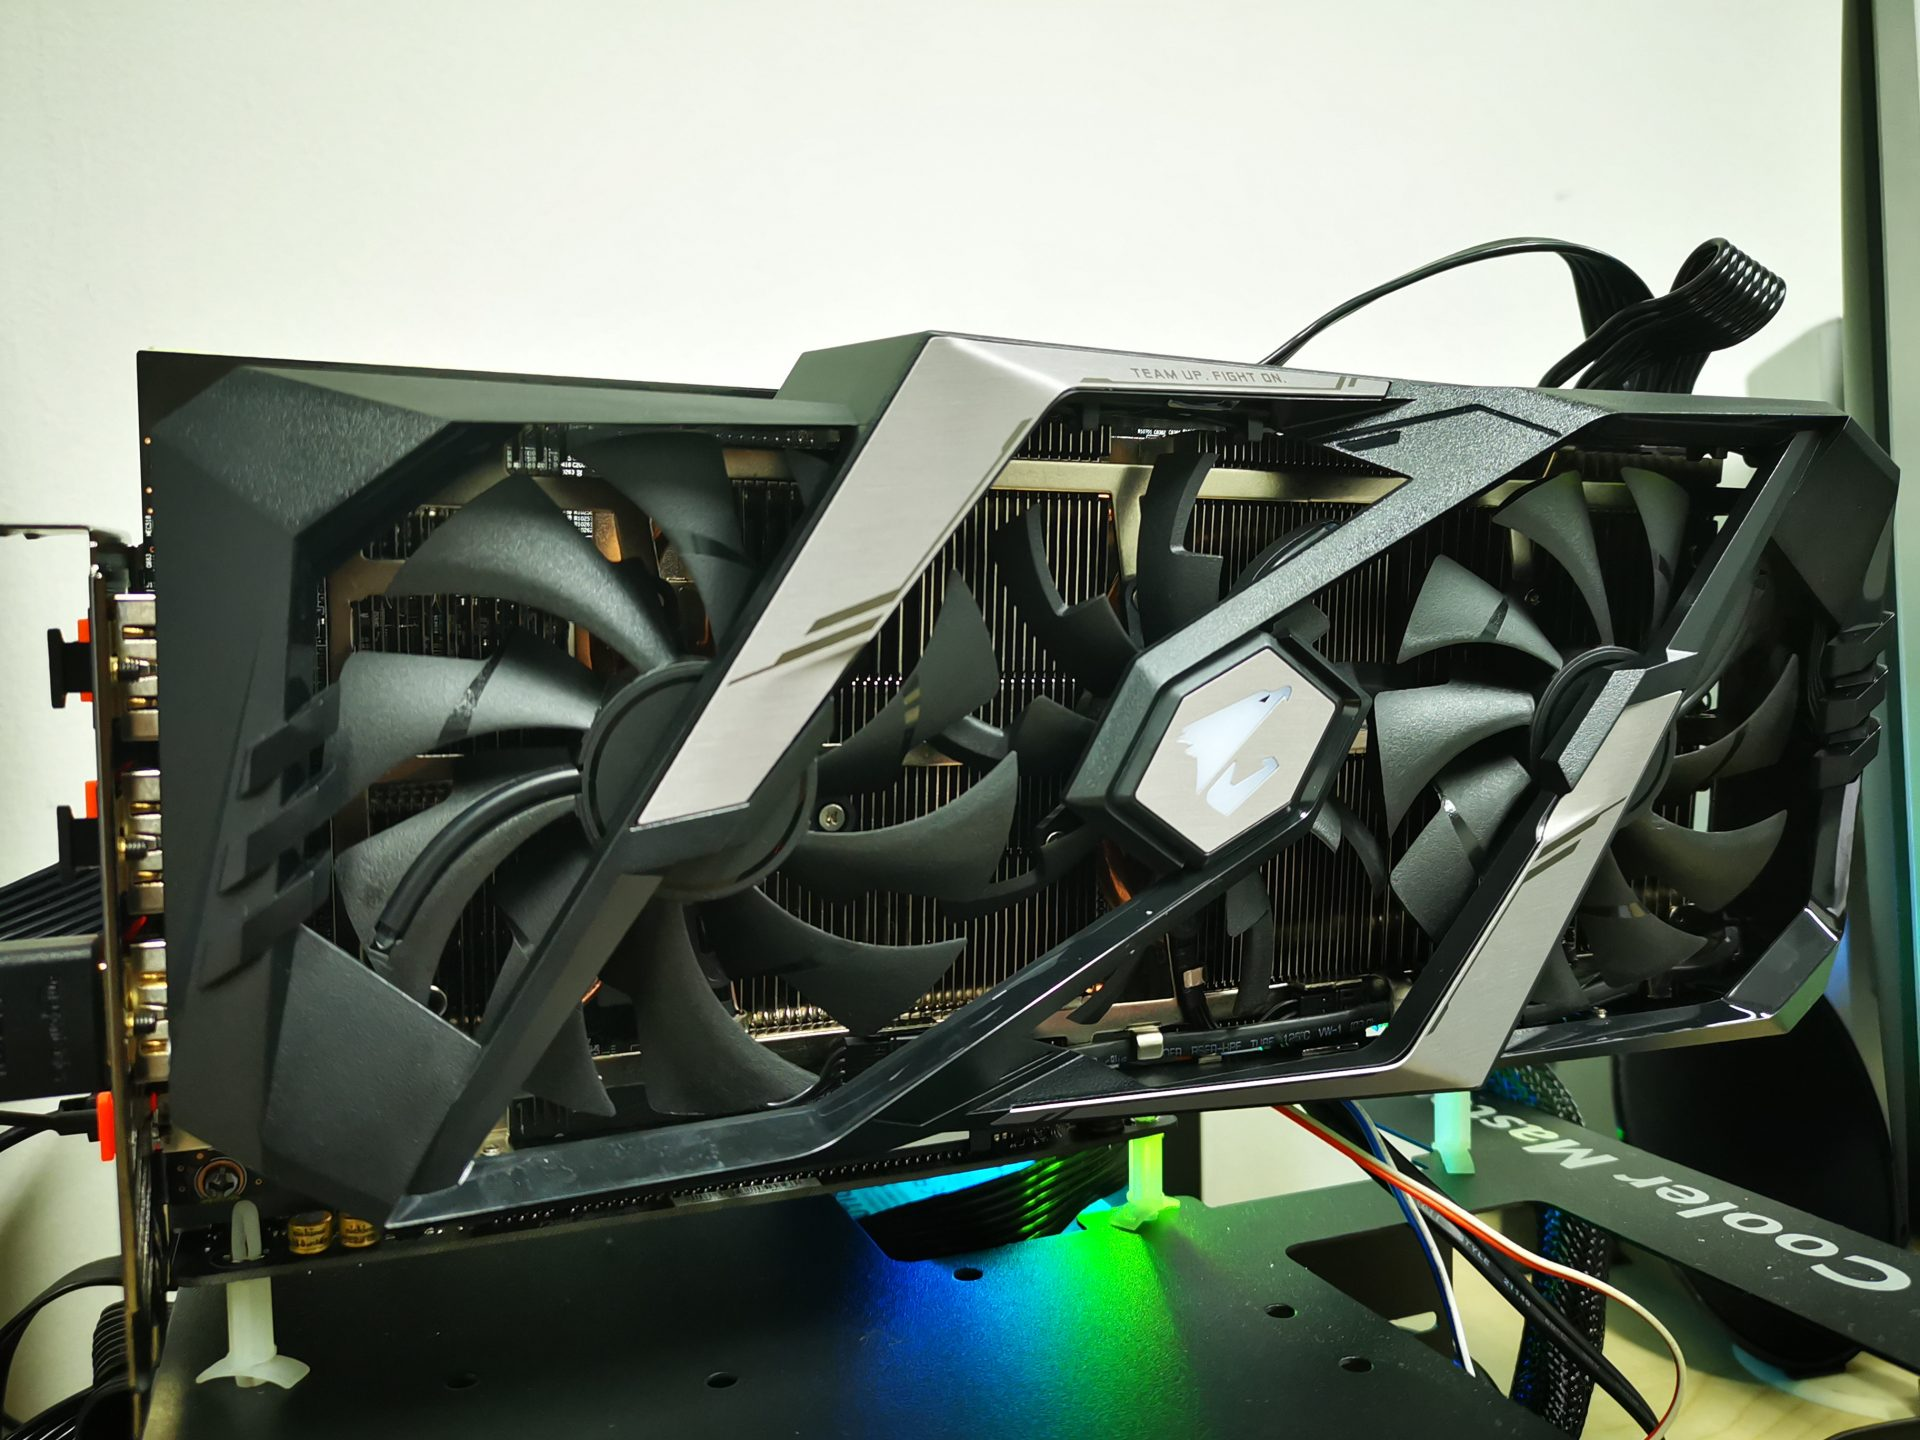 Gigabyte RTX 2070 GAMING OC and AORUS XTREME Review - Which